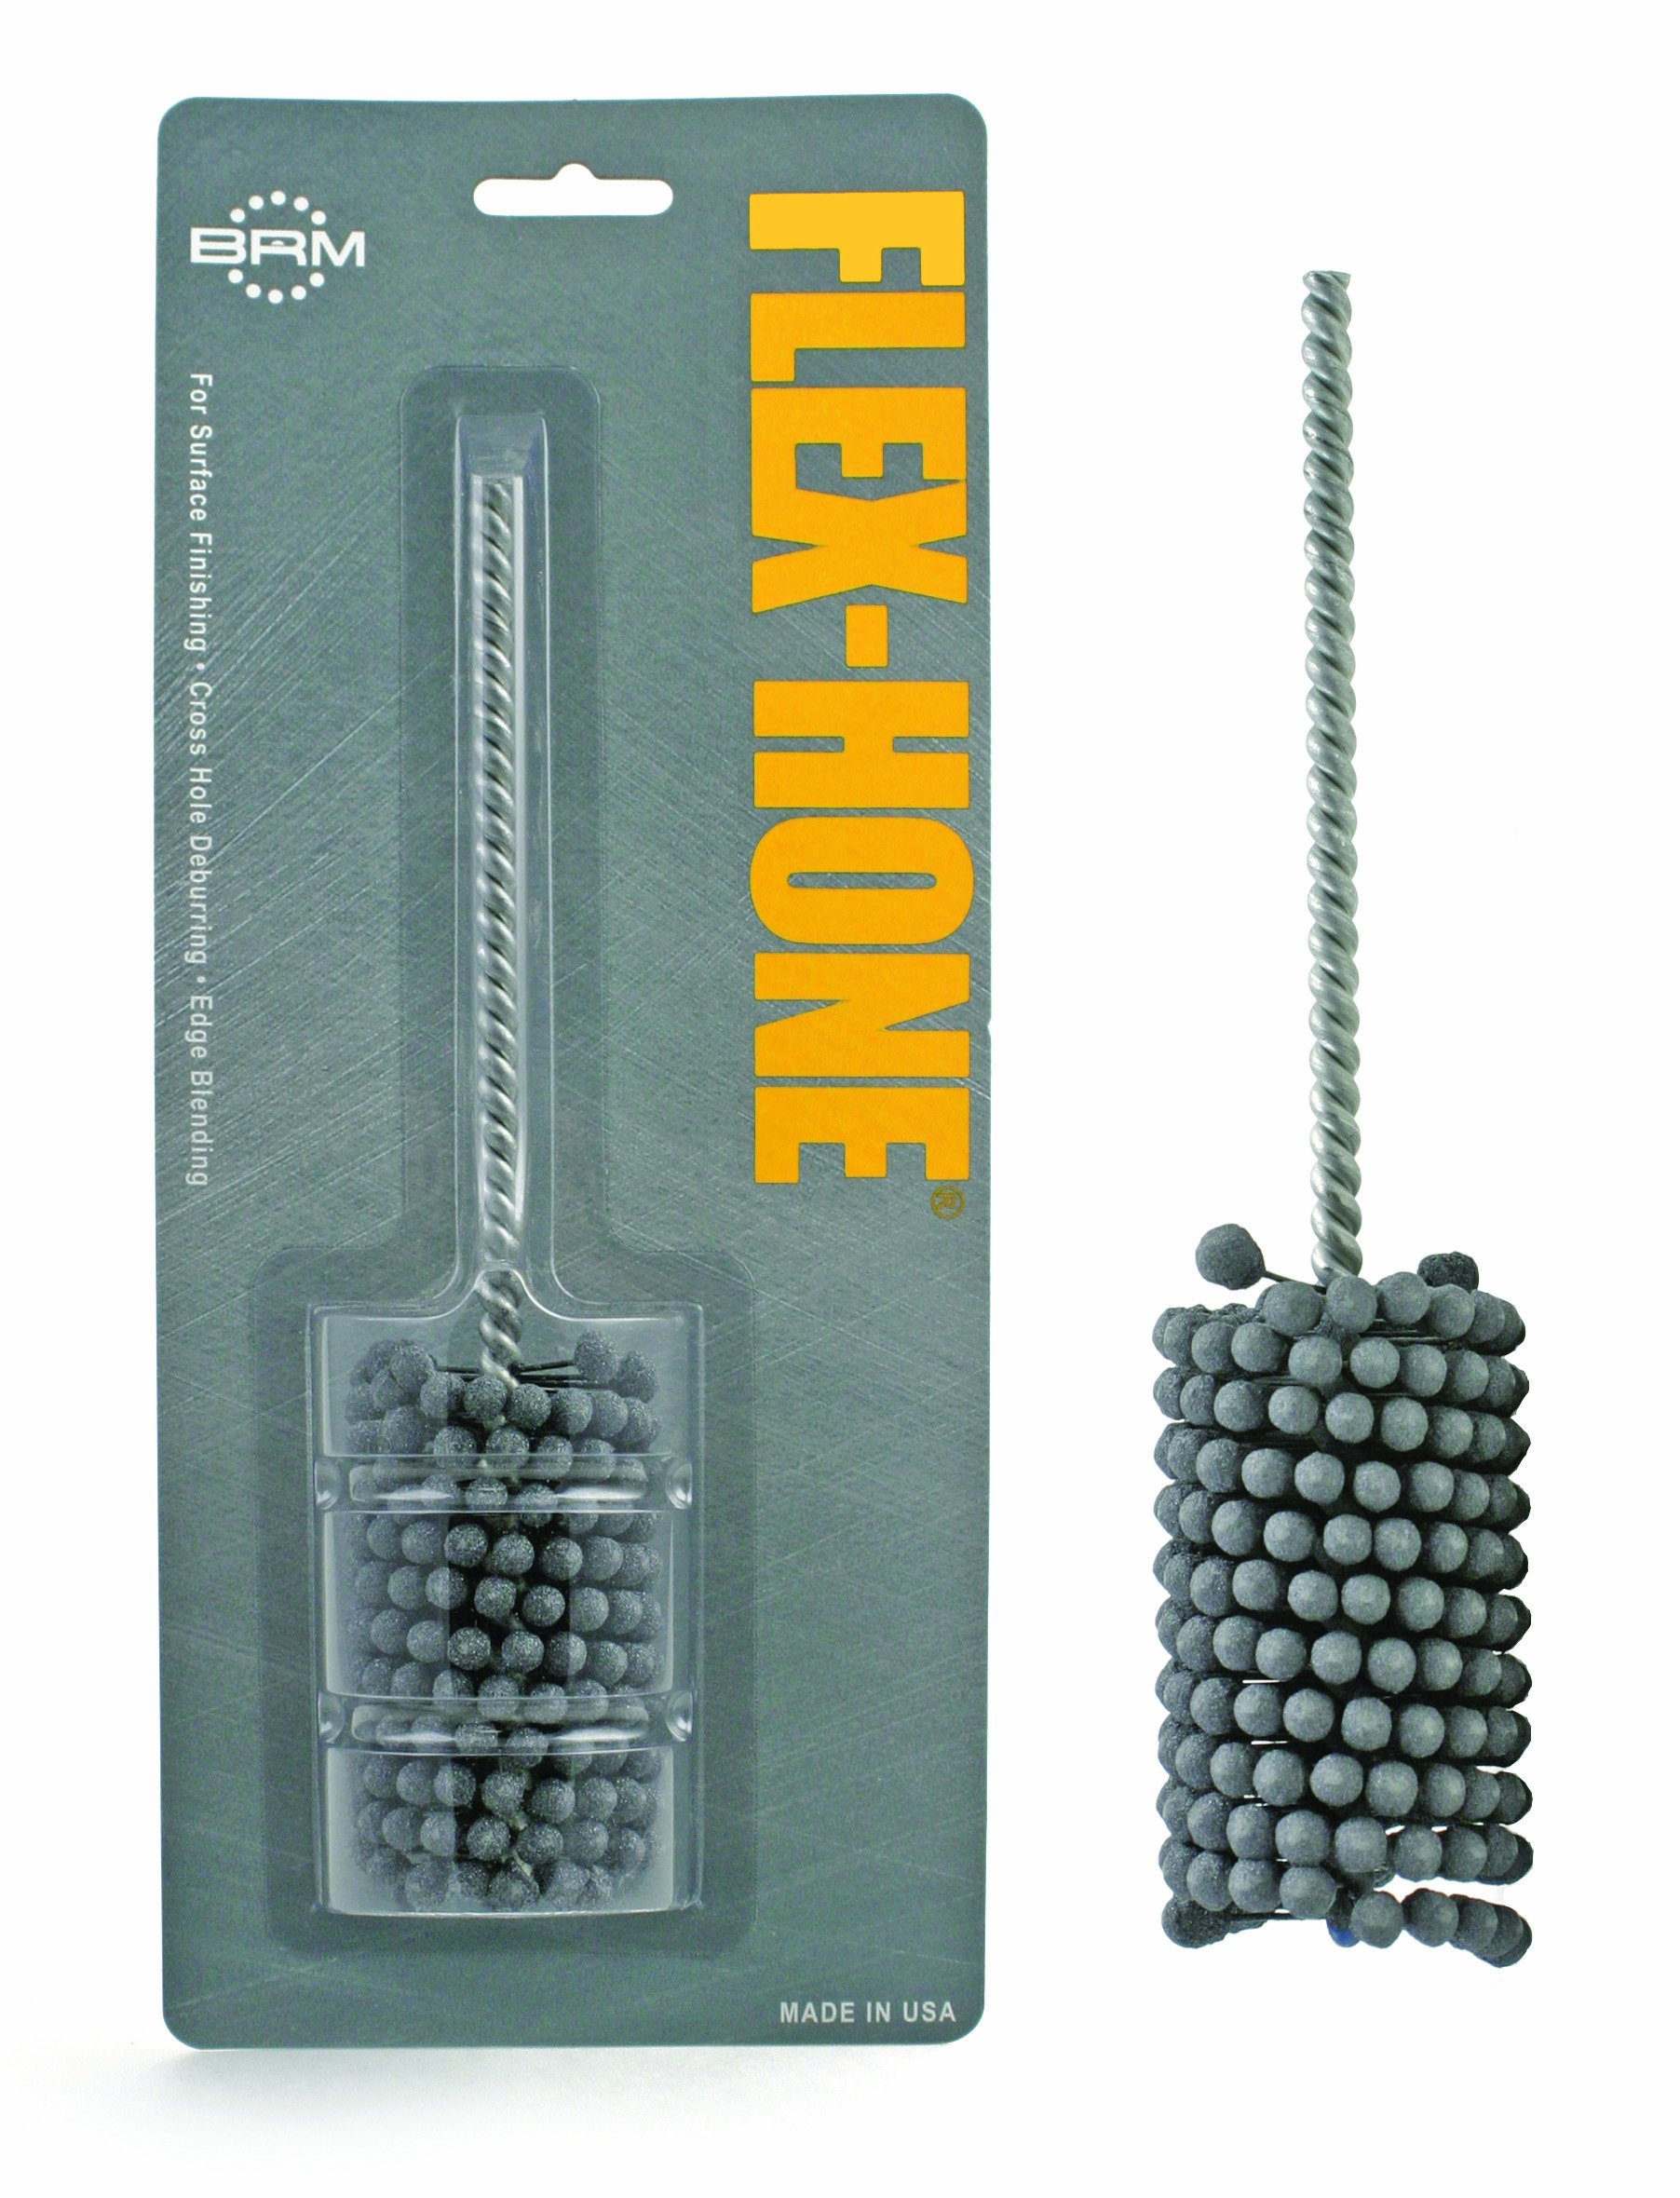 Brush Research BC Standard Flex Hone for Brake Cylinders, Hydraulics and Valve Guides, Aluminum Oxide, 1-1/4'' Diameter, 240 Grit (Pack of 1)